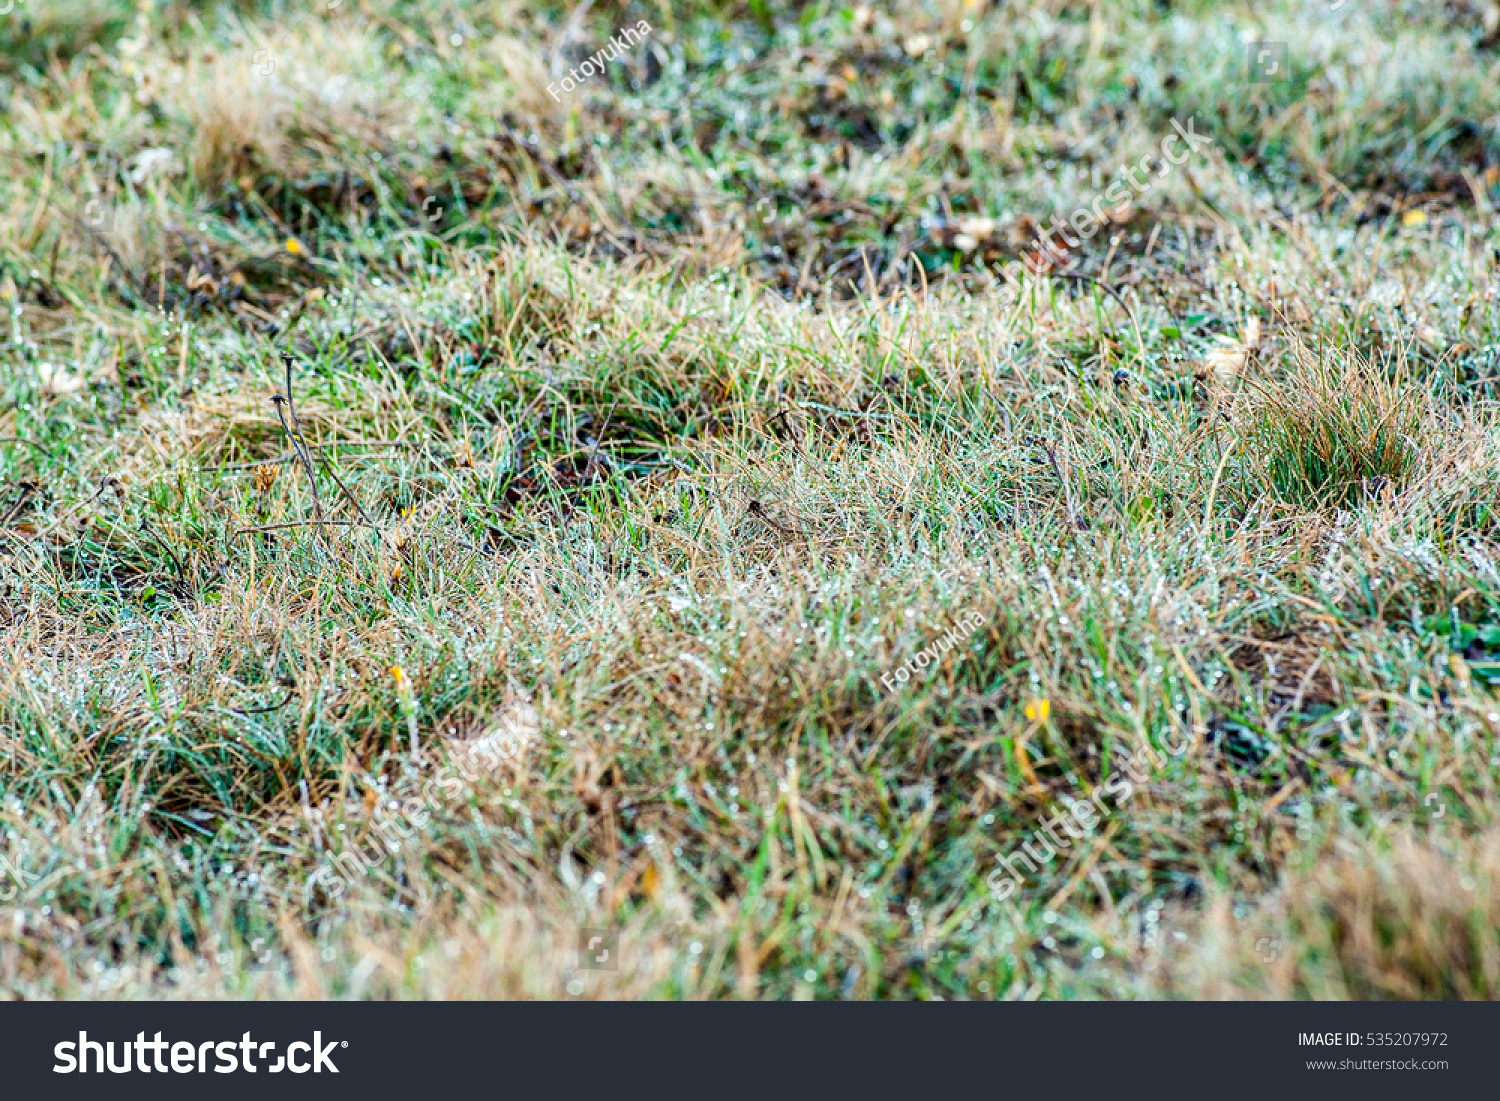 dry grass field background. Dry Grass Field. Autumn Background With A Field